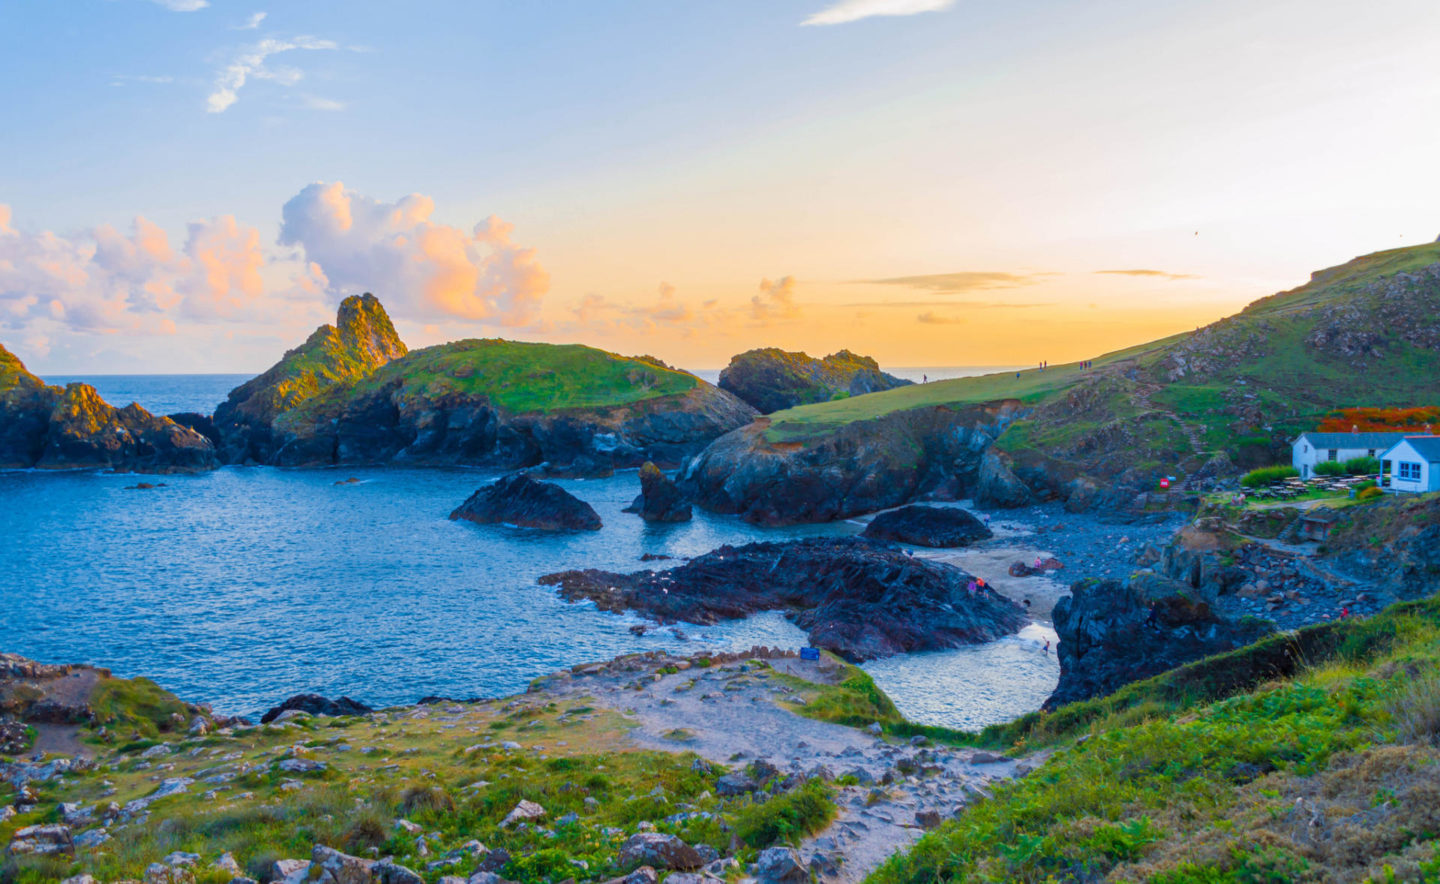 Five Places on my UK Travel Bucket List - Cornwall